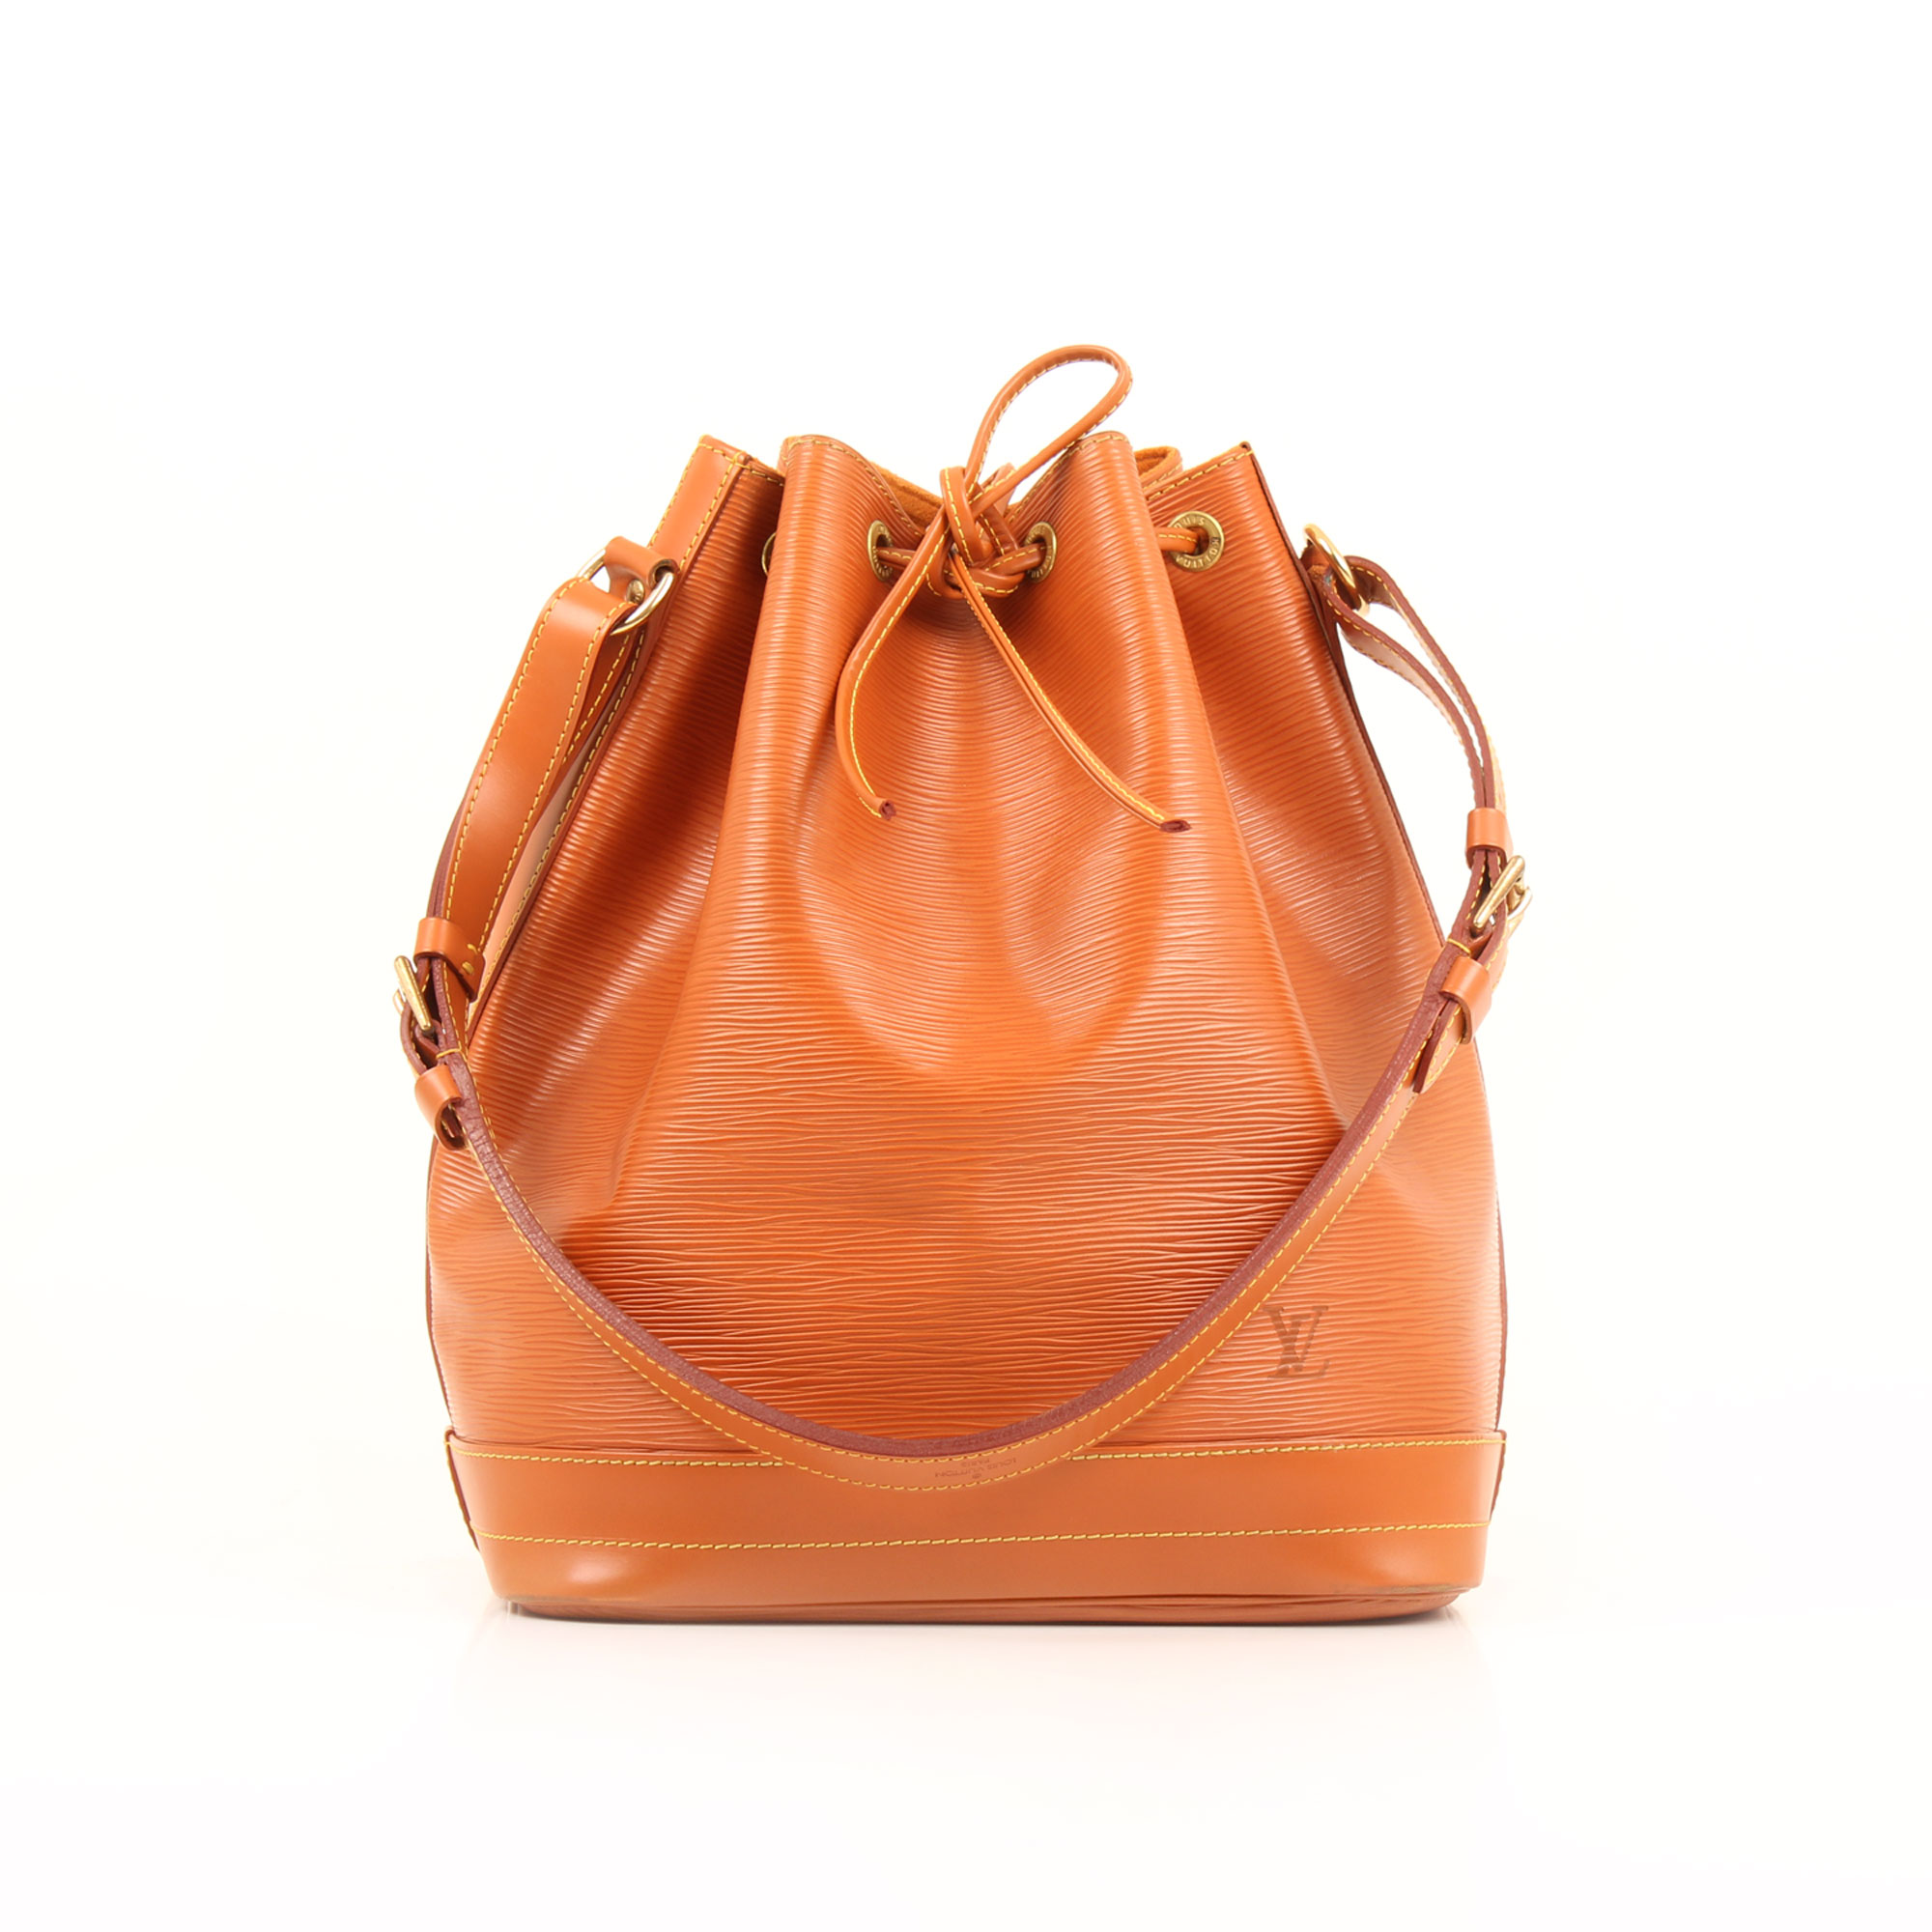 Front image of louis vuitton noe camel epi leather